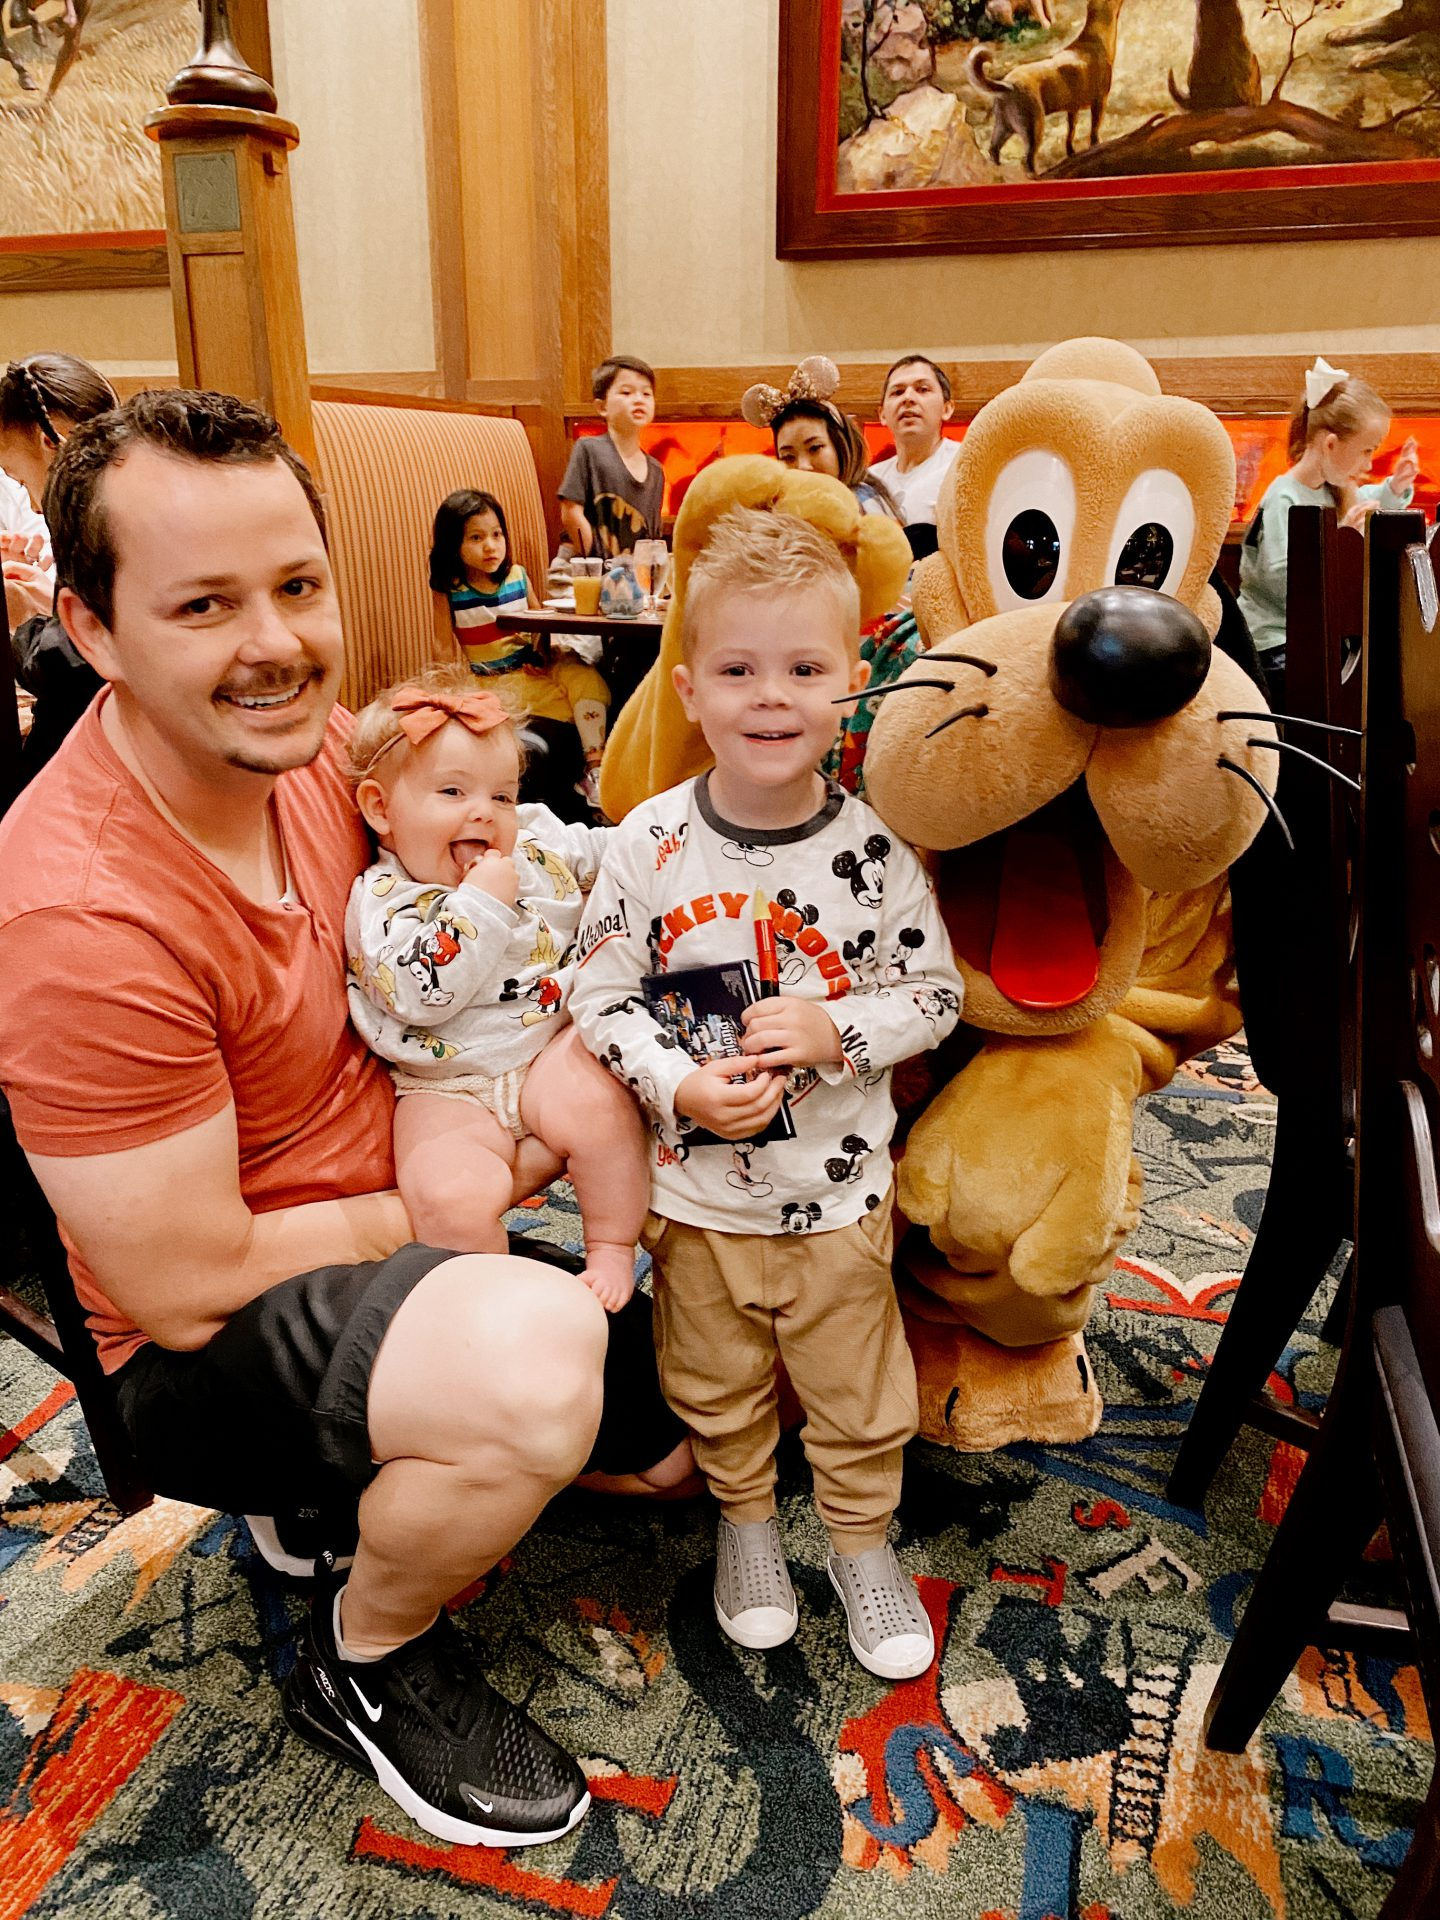 TOP 10 BEST DISNEYLAND TIPS FOR YOUR FAMILY featured by top San Diego blog, Navy Grace | Disneyland Tips by popular San Diego lifestyle blog, Navy Grace: image of a dad and his two kids standing next to Pluto at Disneyland.